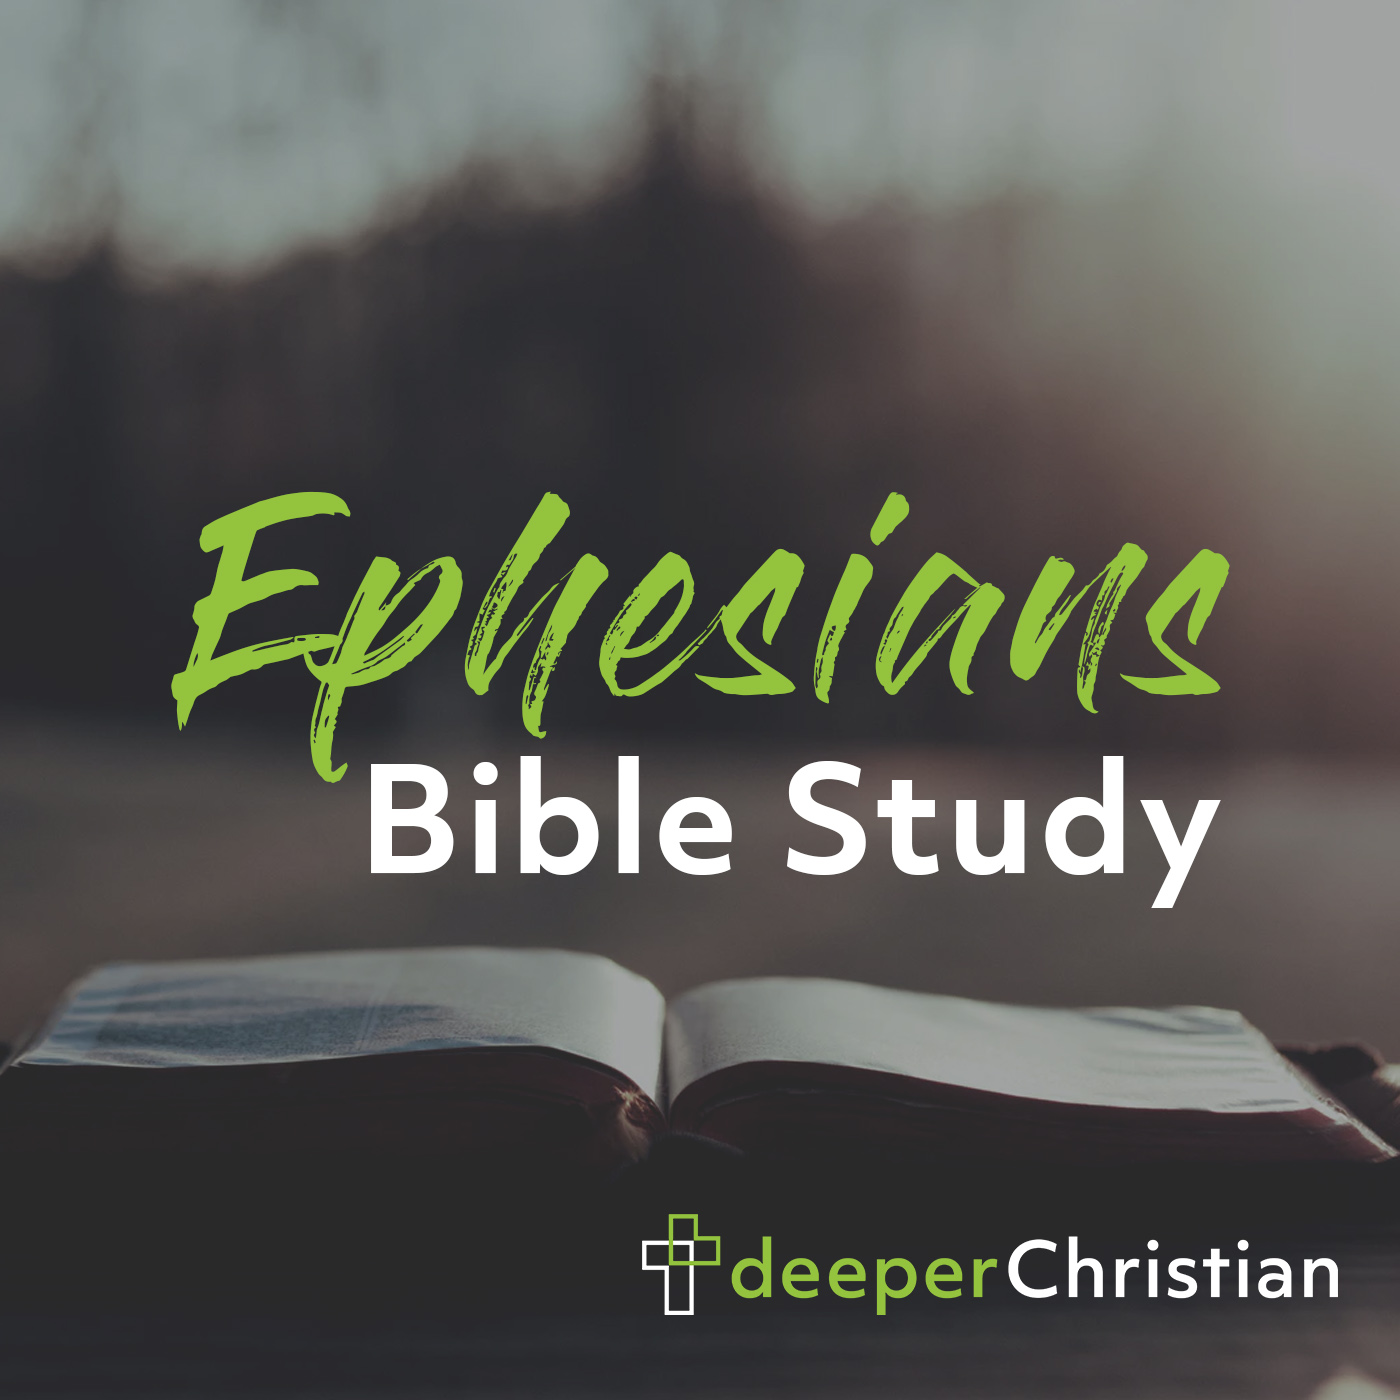 Artwork for podcast Deeper Christian Bible Study in Ephesians